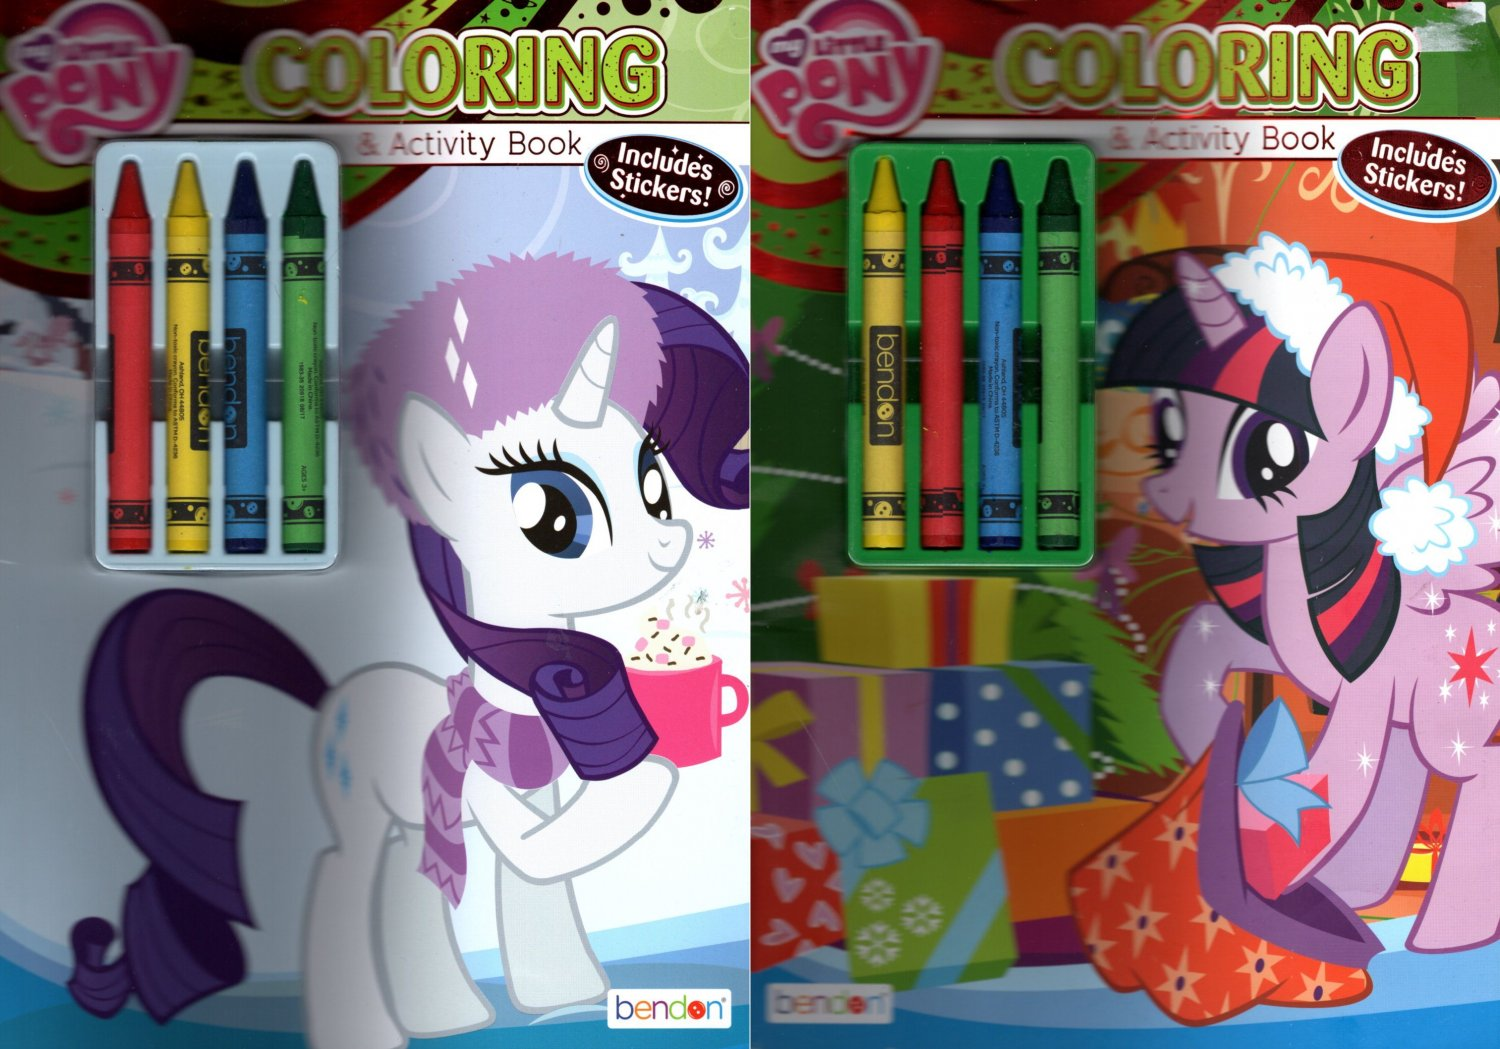 My Little Pony - Christmas Edition Holiday - Coloring & Activity Book - Includes Stickers  Set of 2